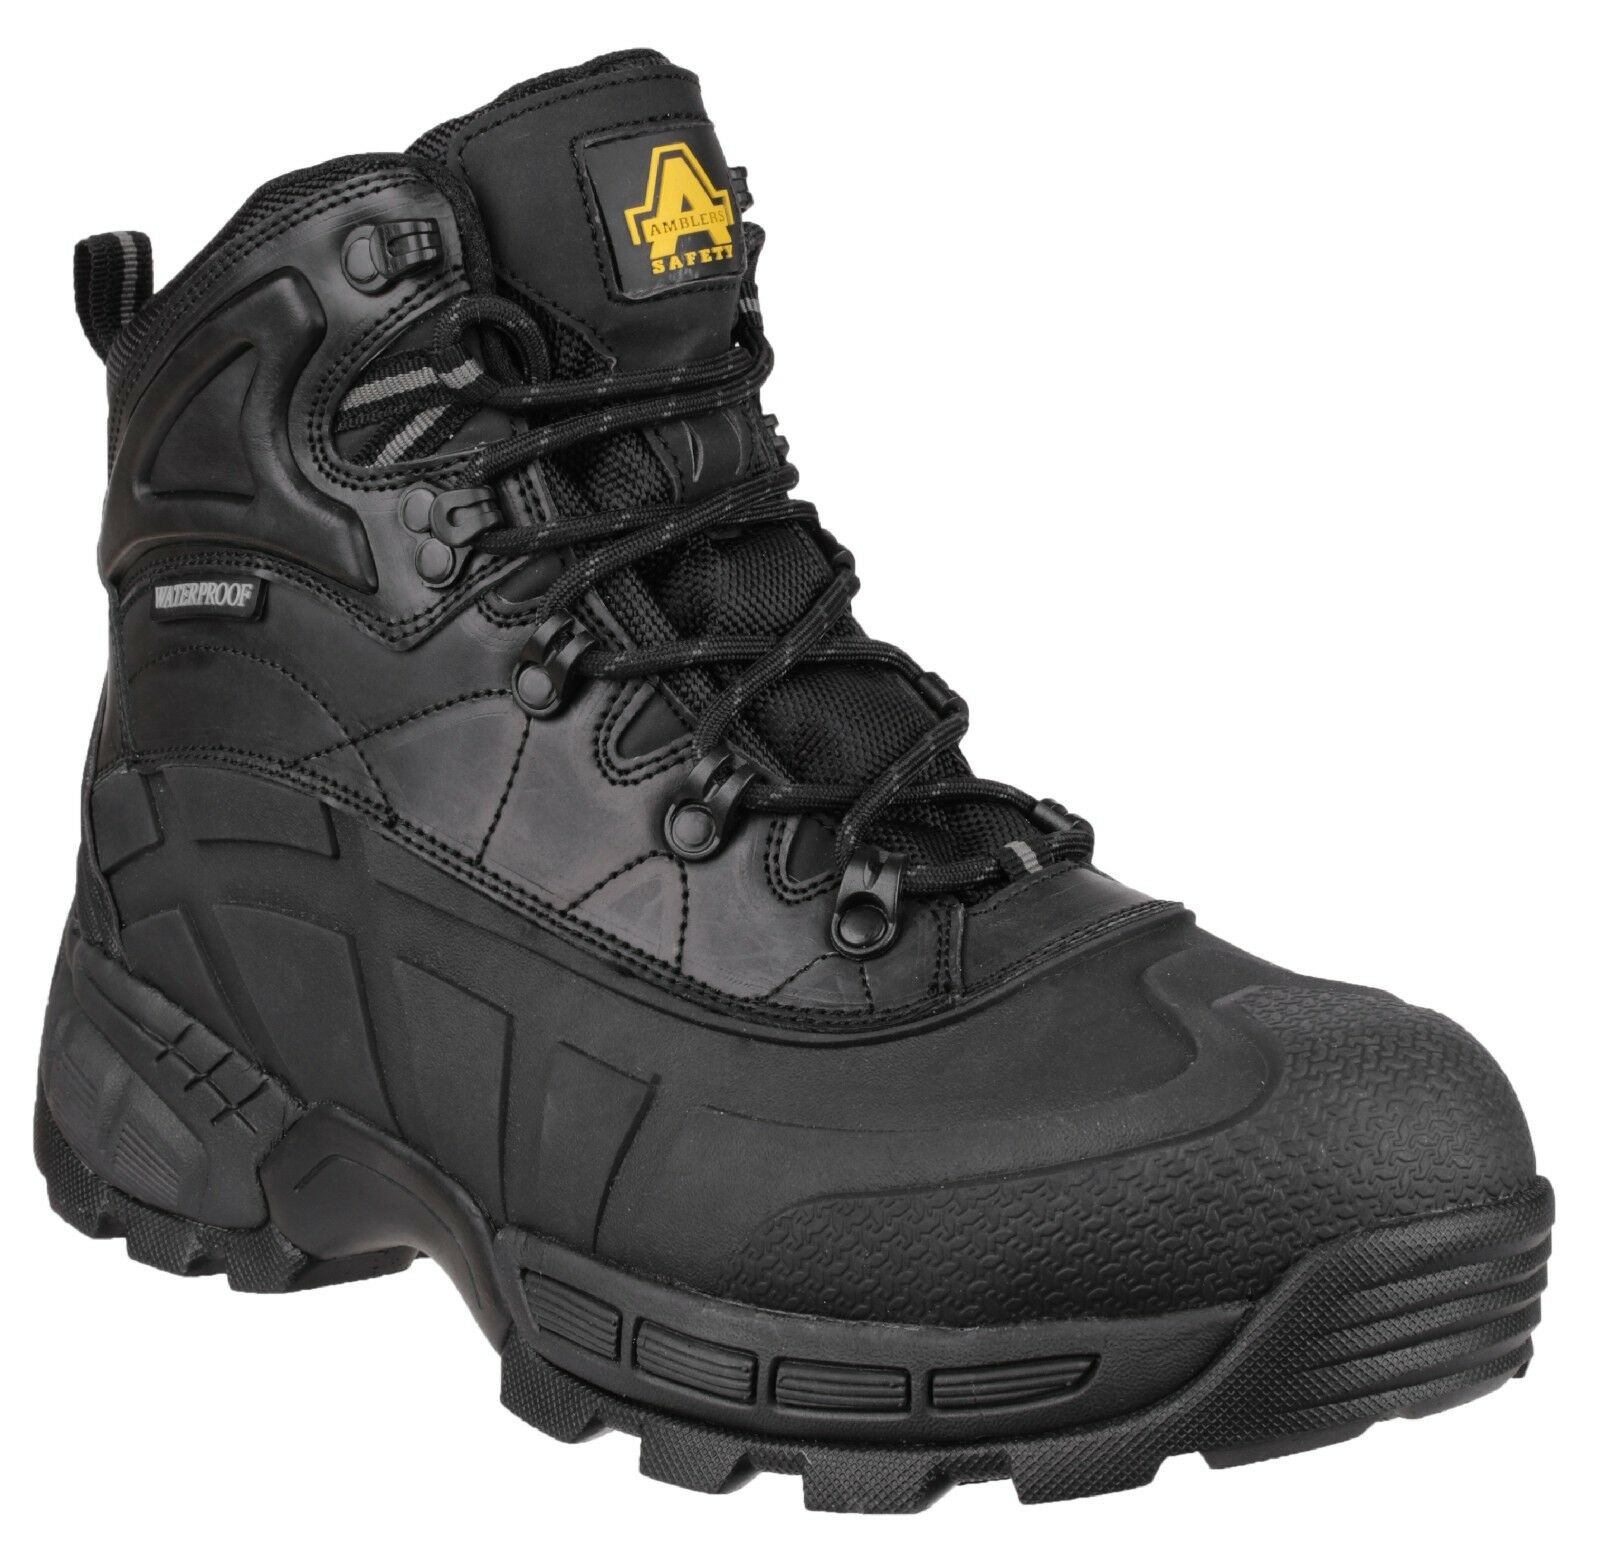 e32ff75a911 Amblers FS430 Orca S3 Waterproof Safety Work Boots Black 6-12 Lightweight